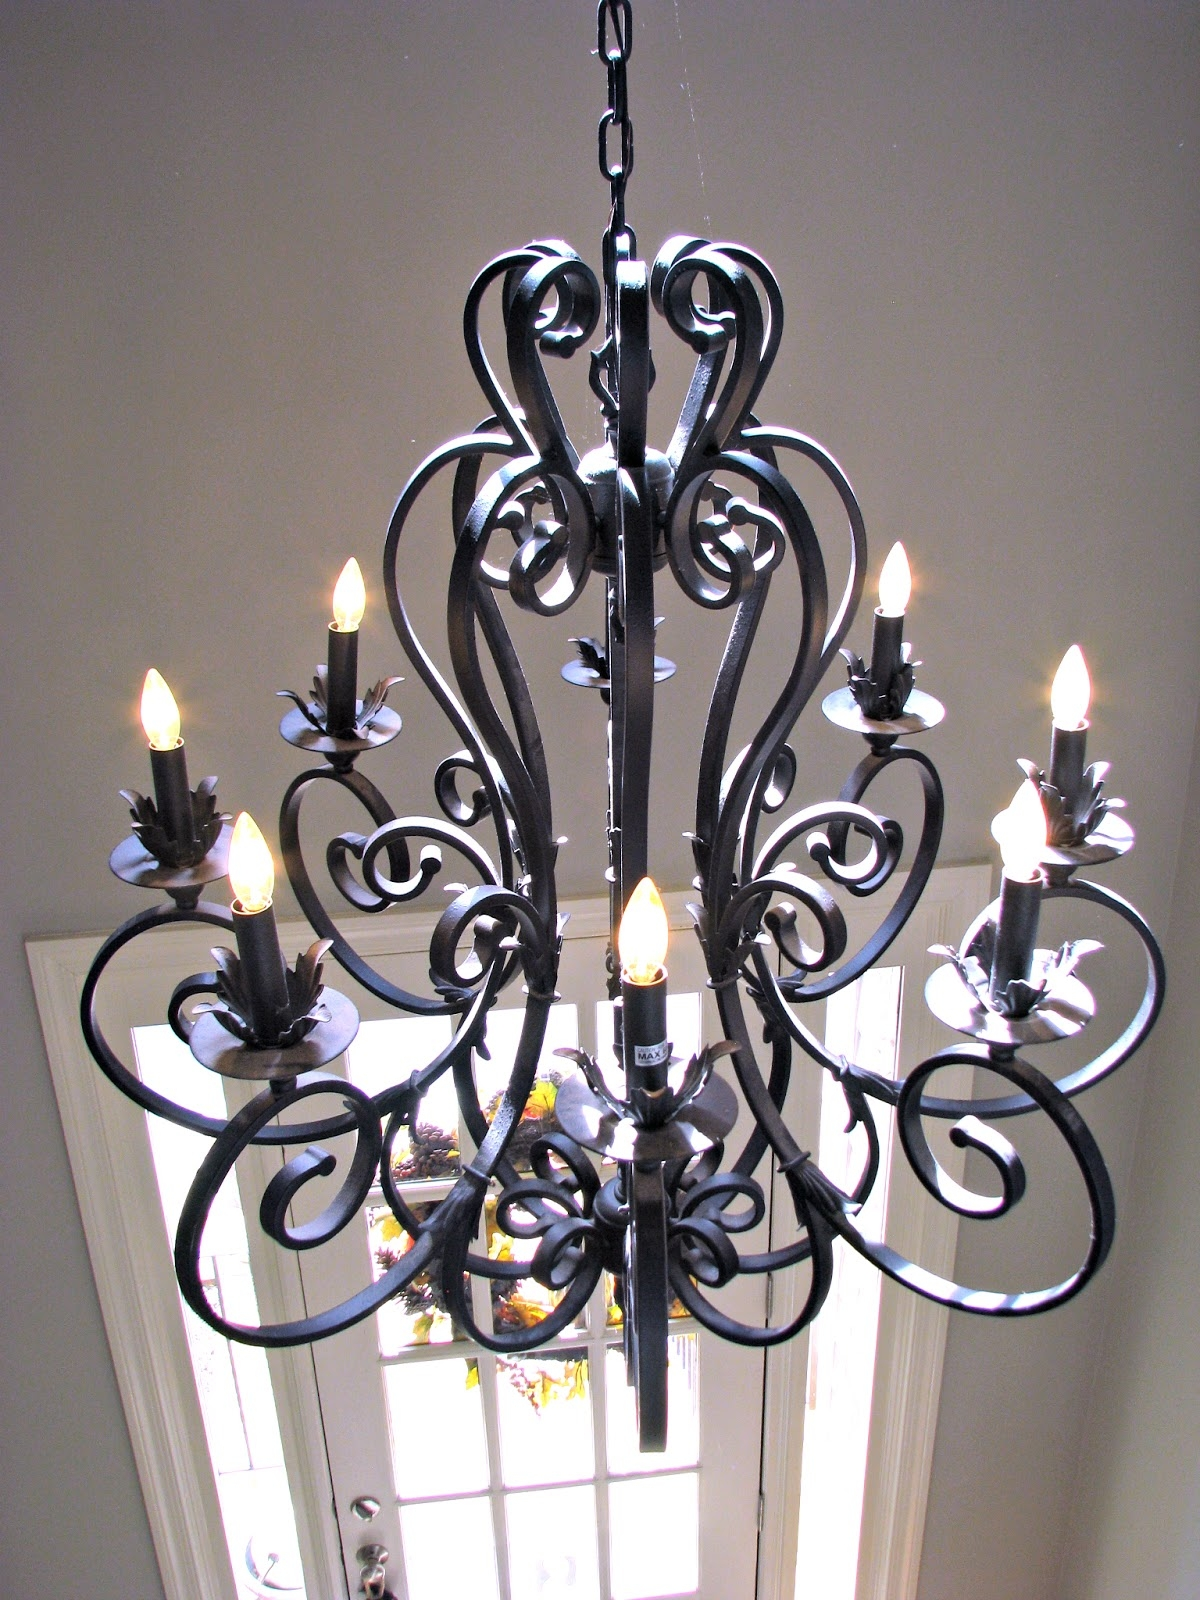 Popular Photo of Modern Wrought Iron Chandeliers